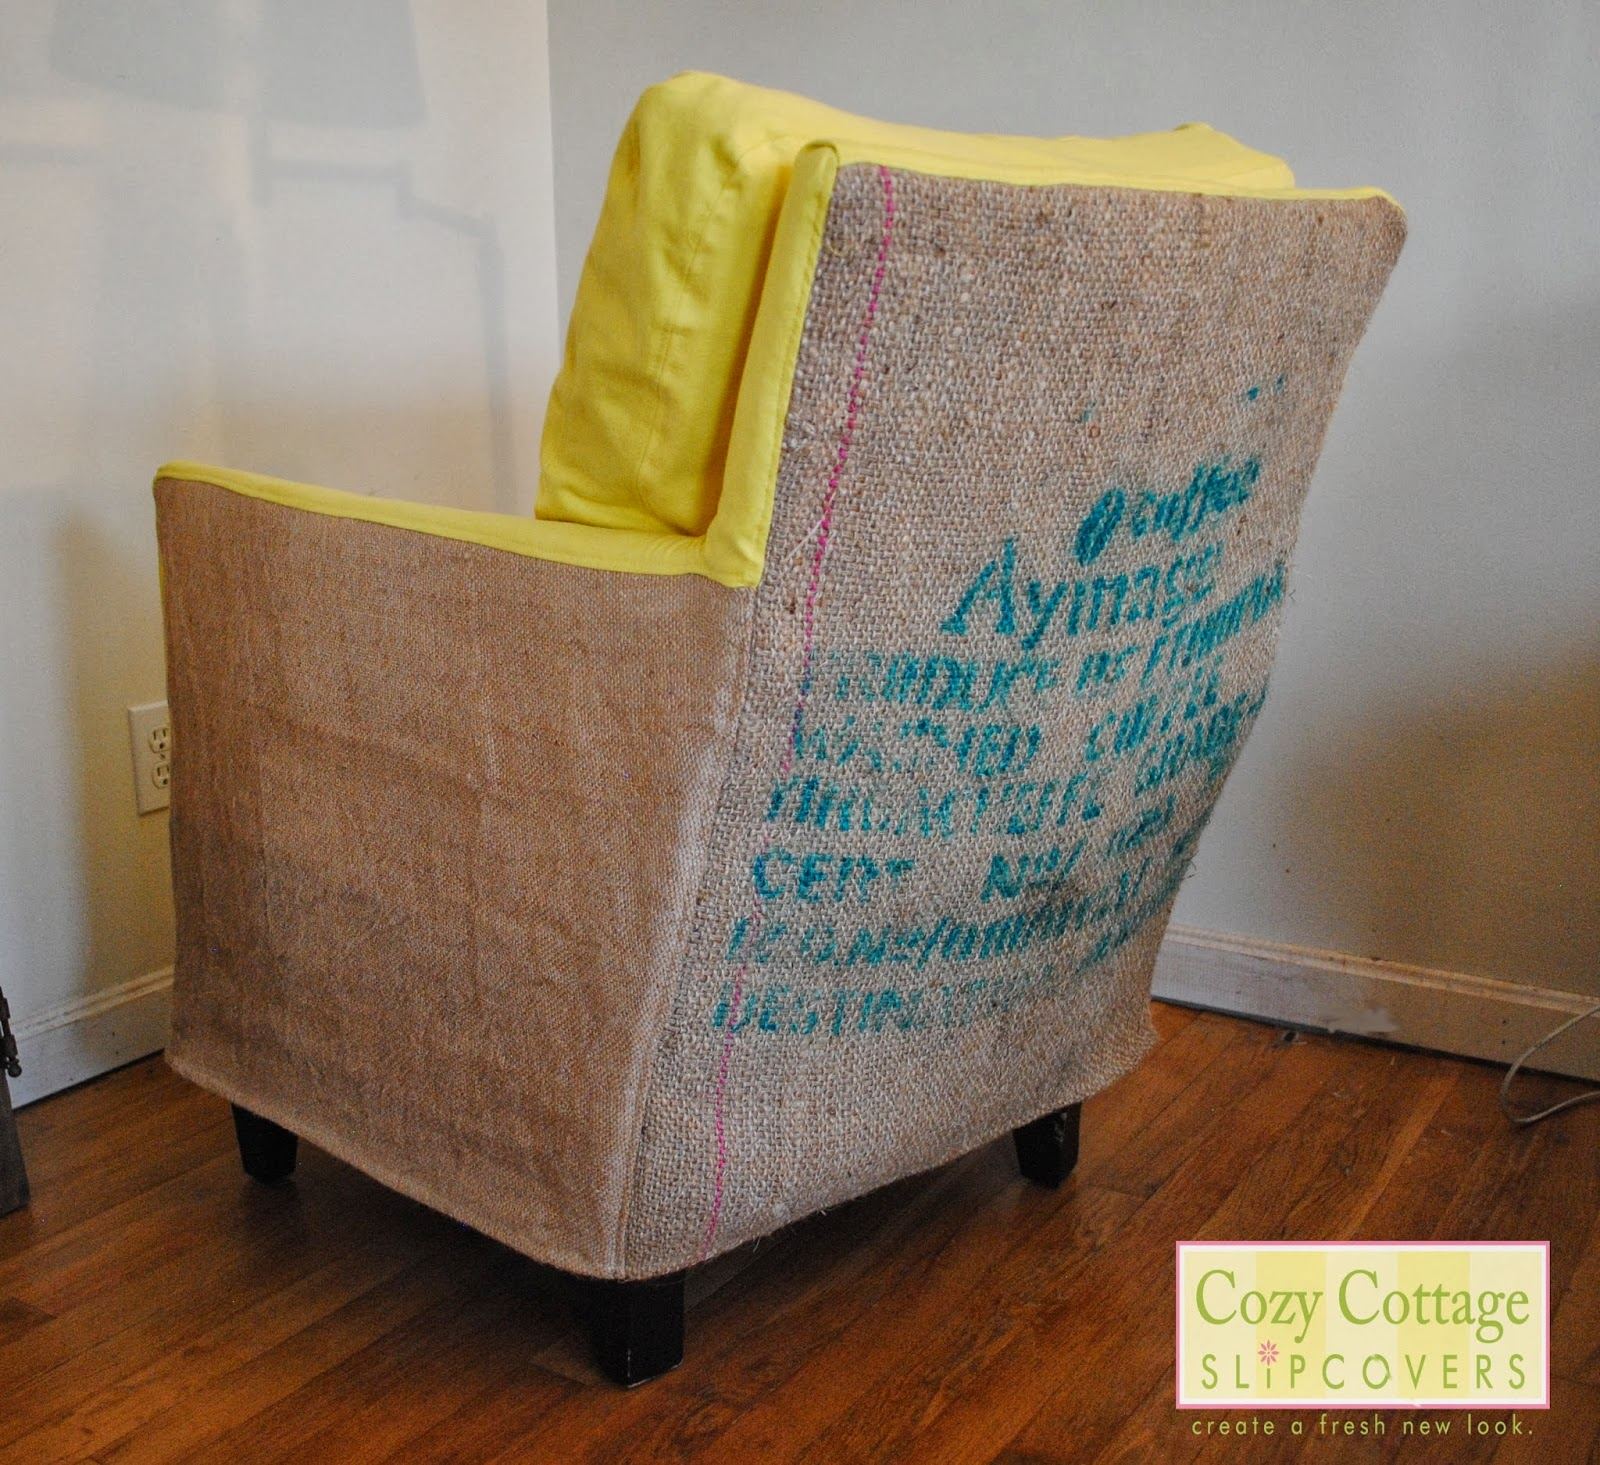 burlap chair covers hammock stand craigslist cozy cottage slipcovers coffee sack slipcover